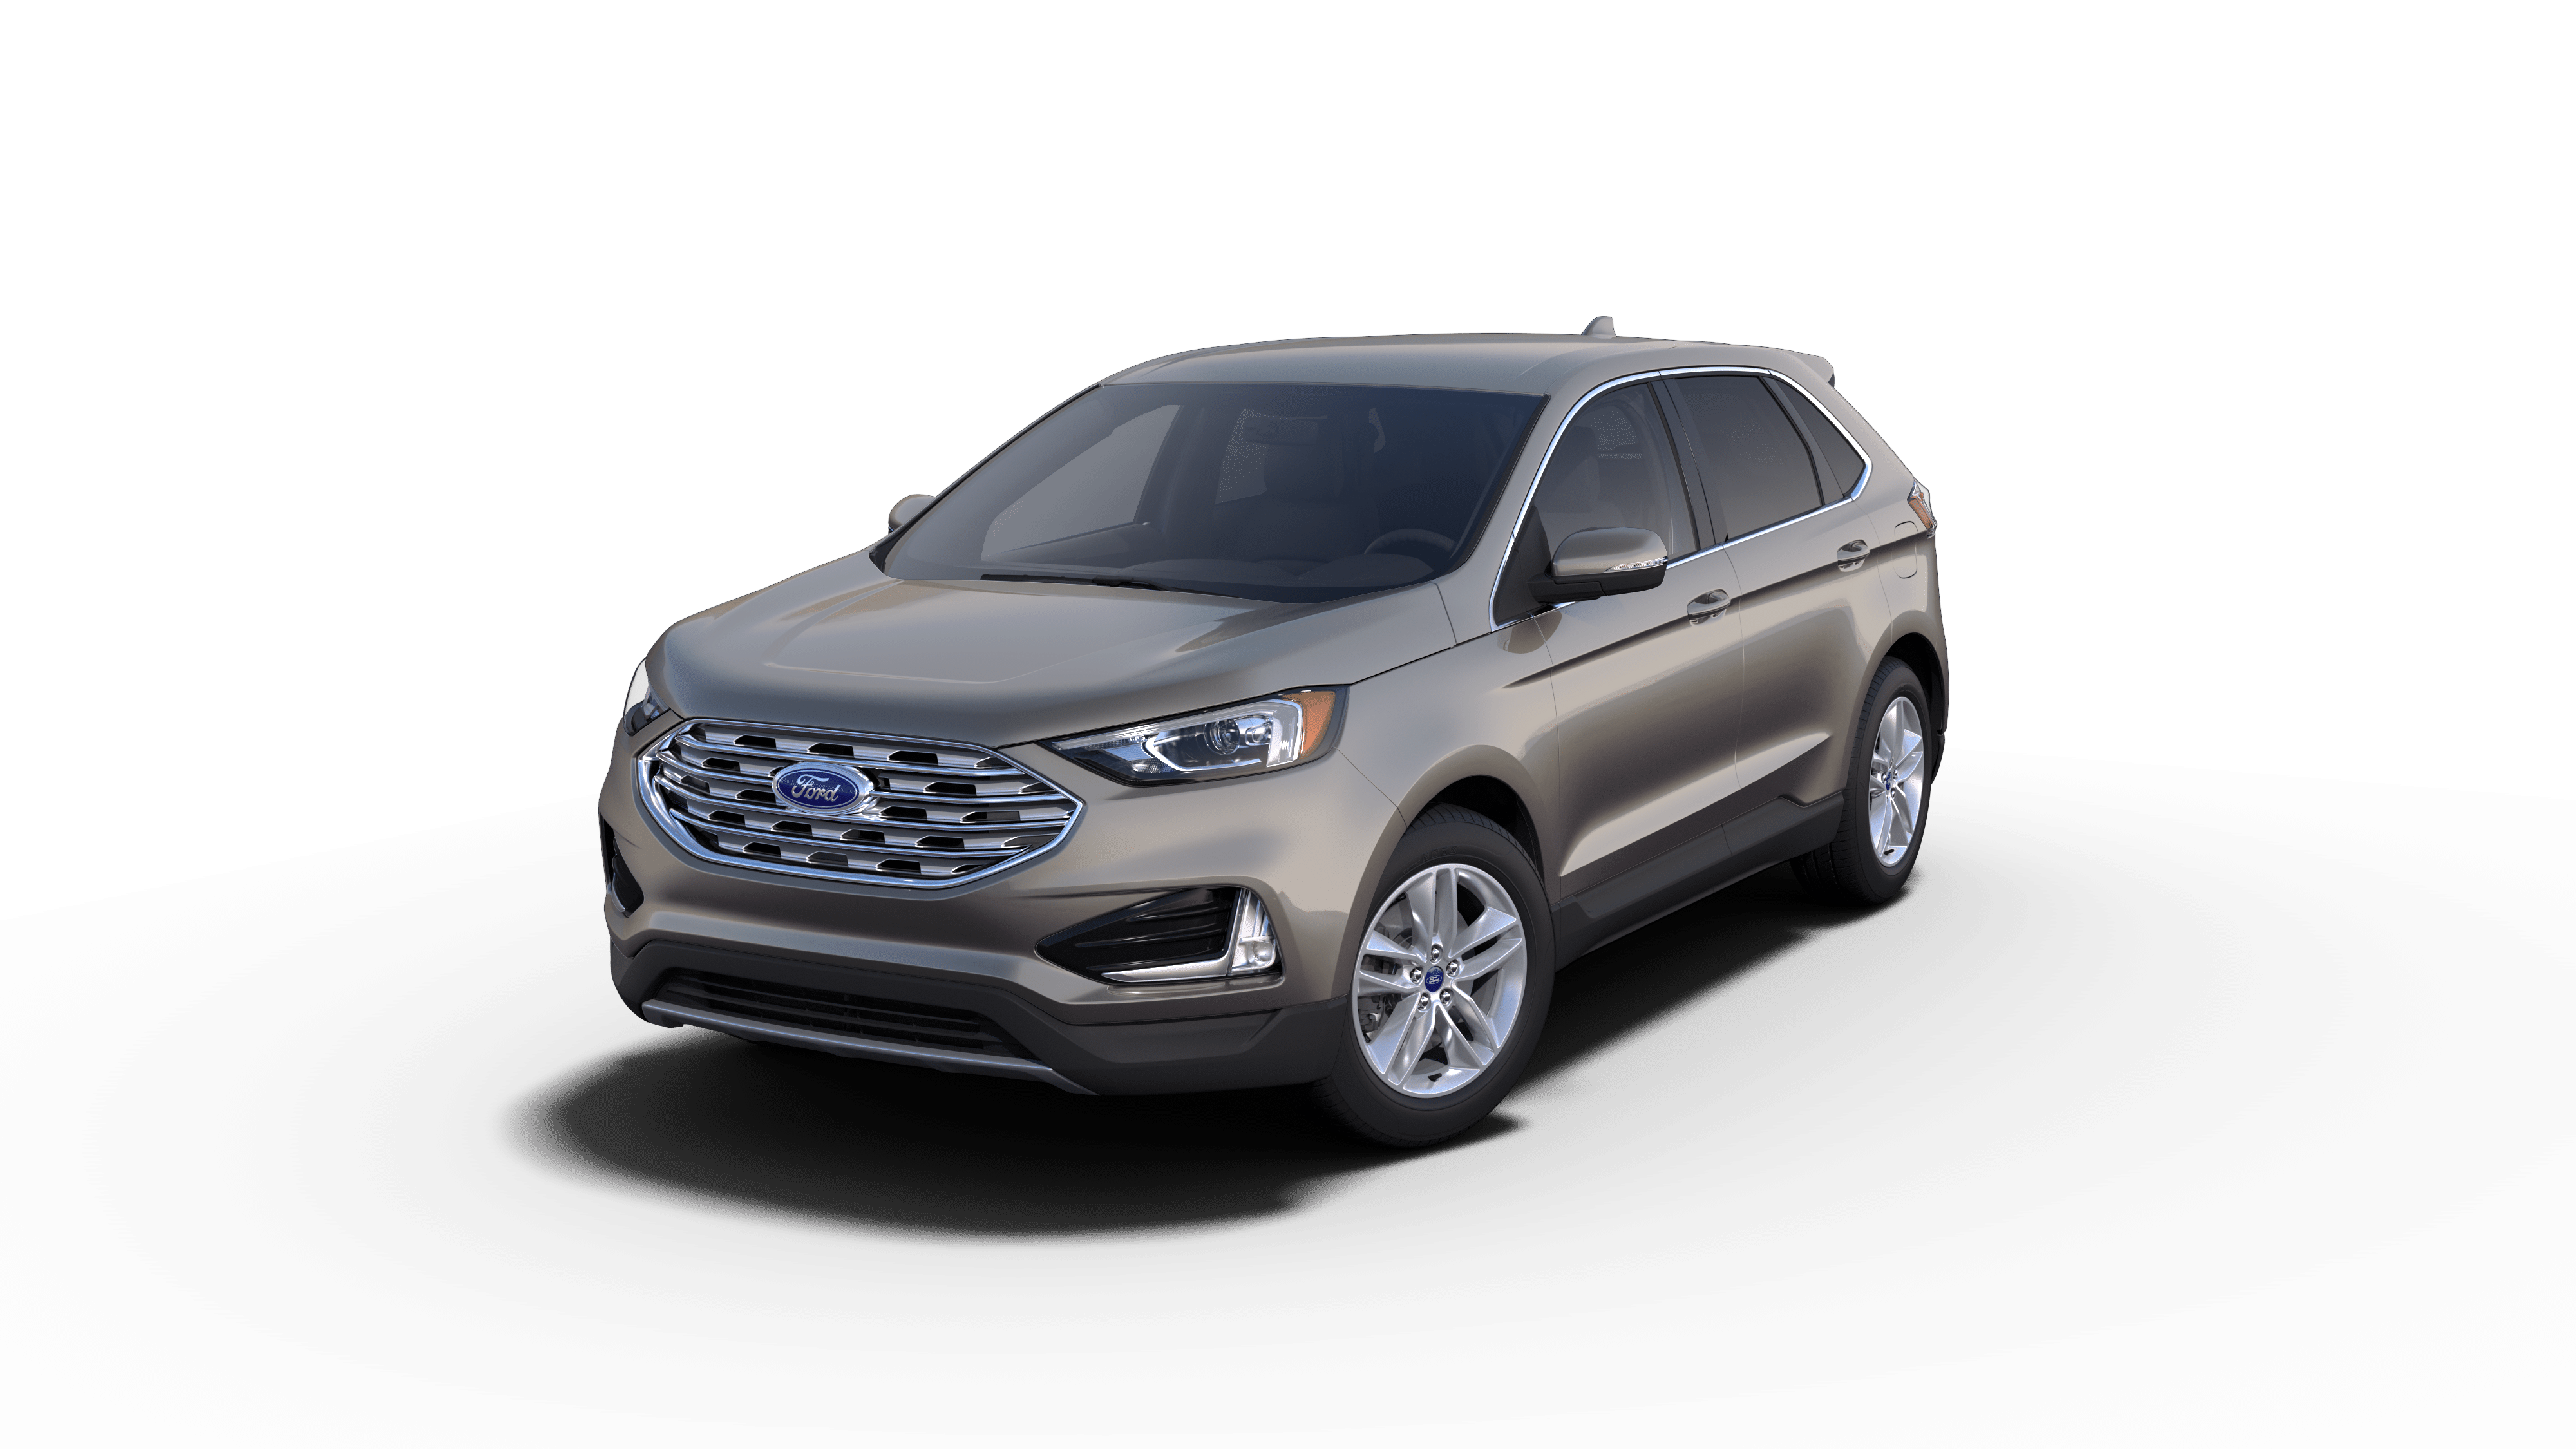 2019 ford edge vehicle photo in bowling green oh 43402 9322